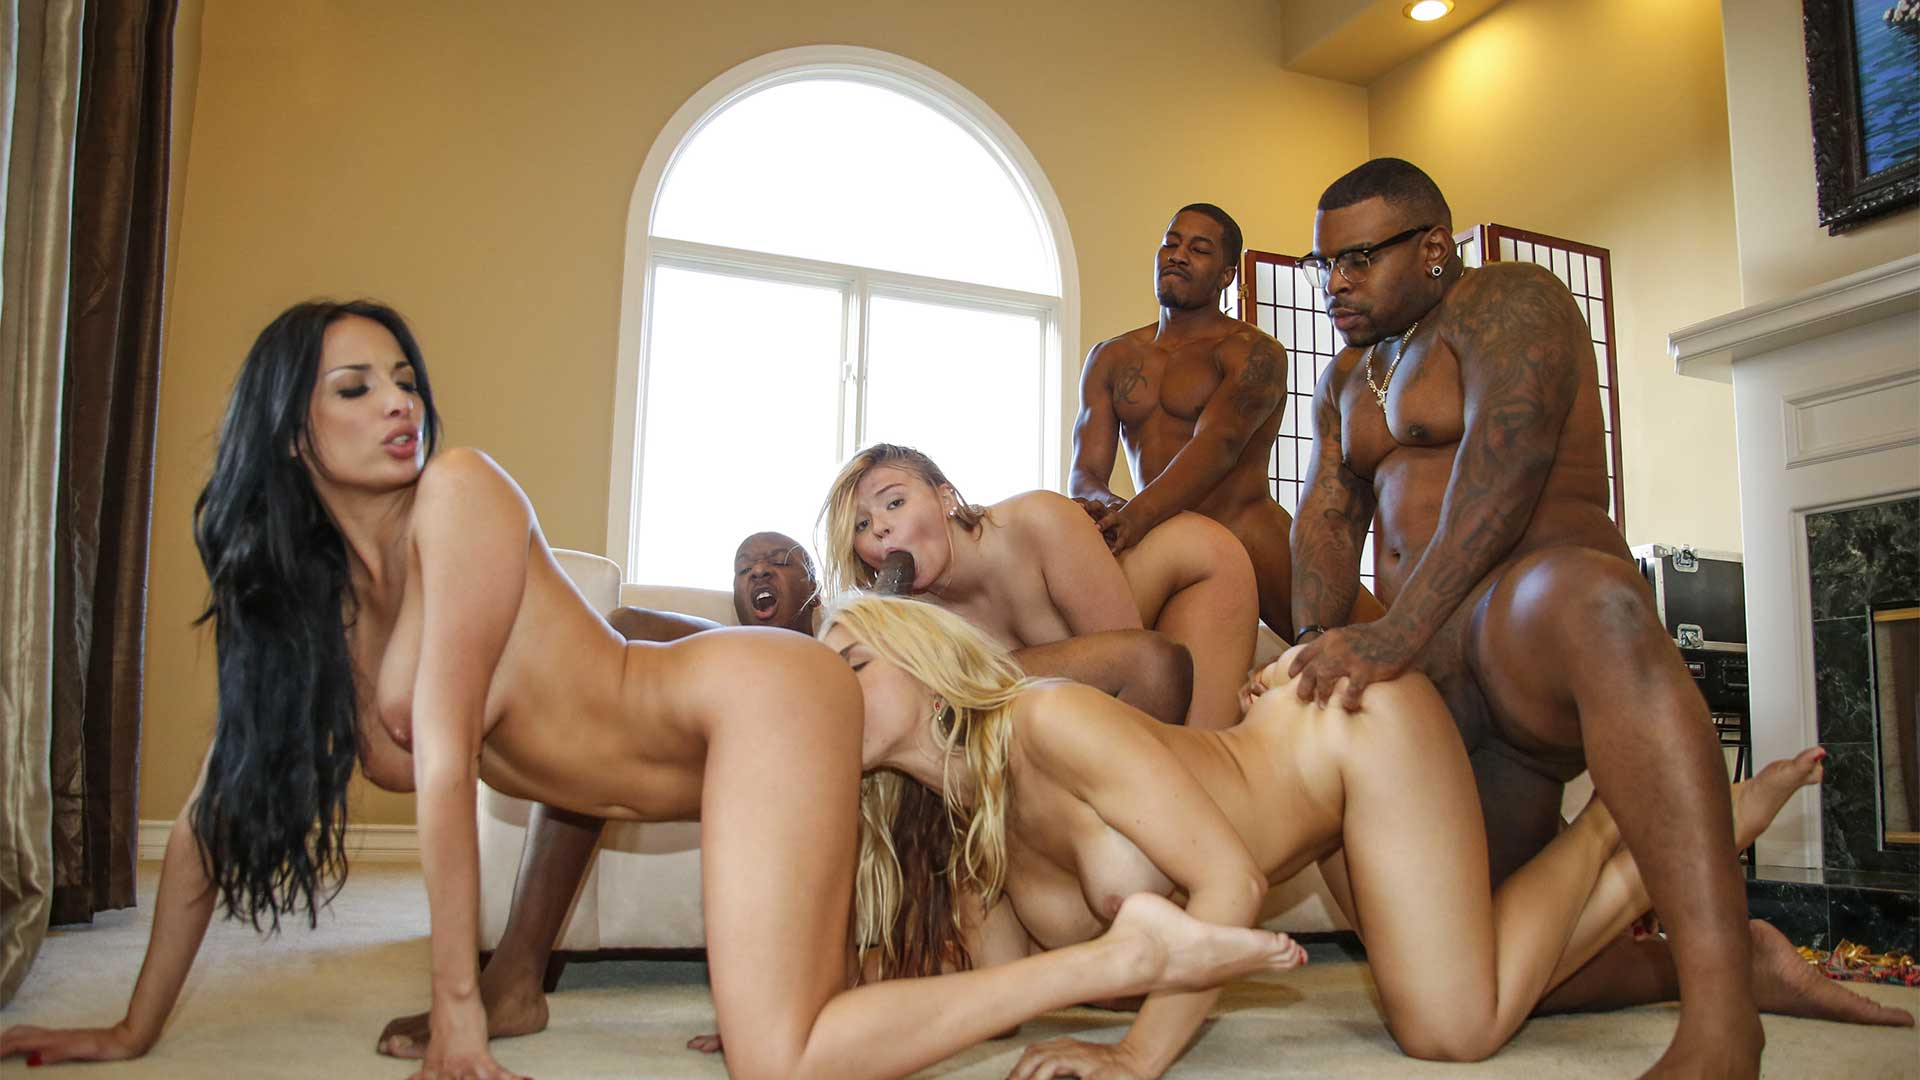 Horny housewives swinger sex orgy with a group of black bulls interracial